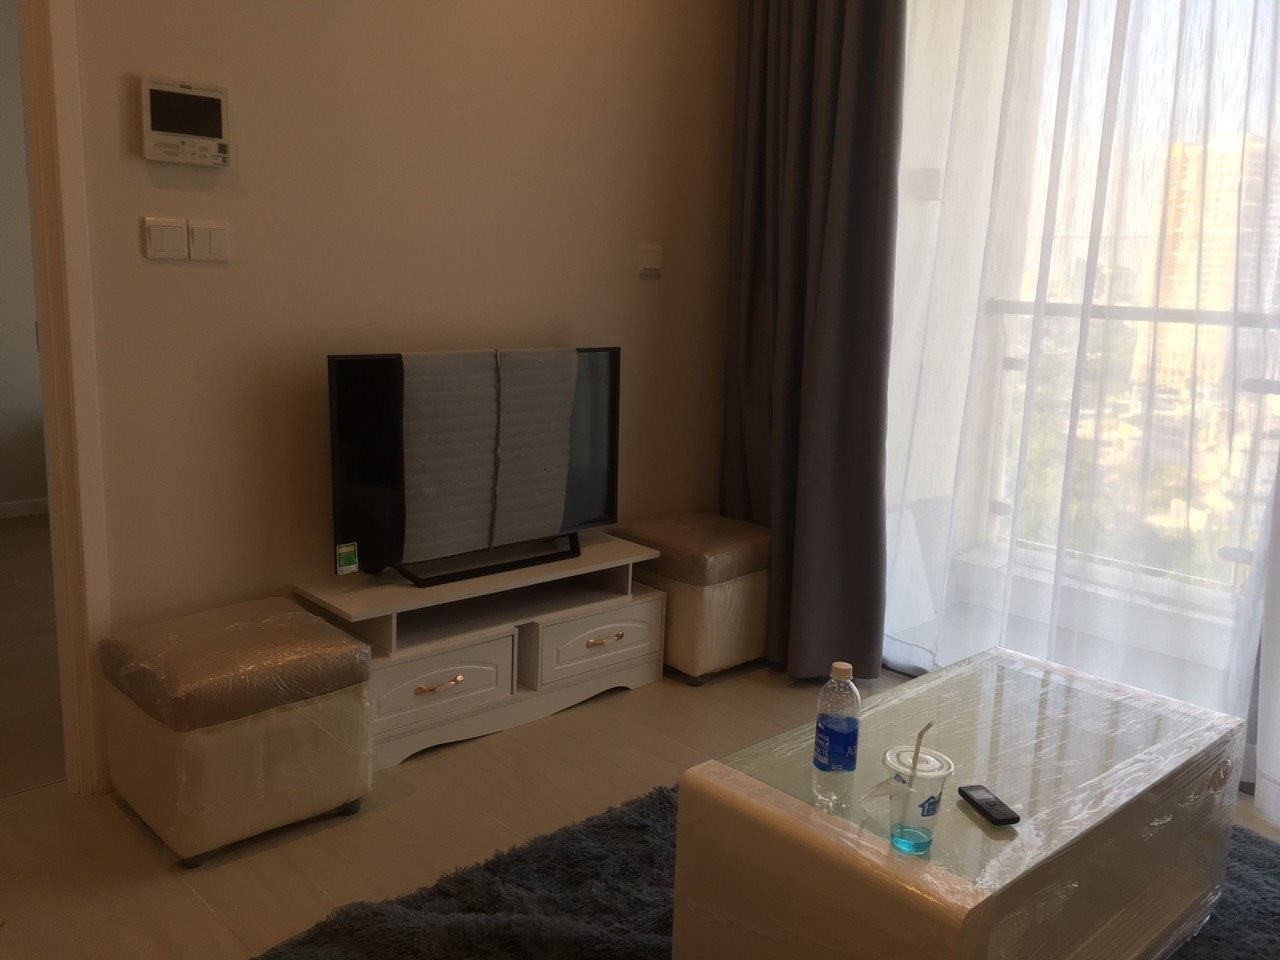 DI0995 - Diamond Island Apartment For Rent & Sale in Ho Chi Minh City - 1 bedroom